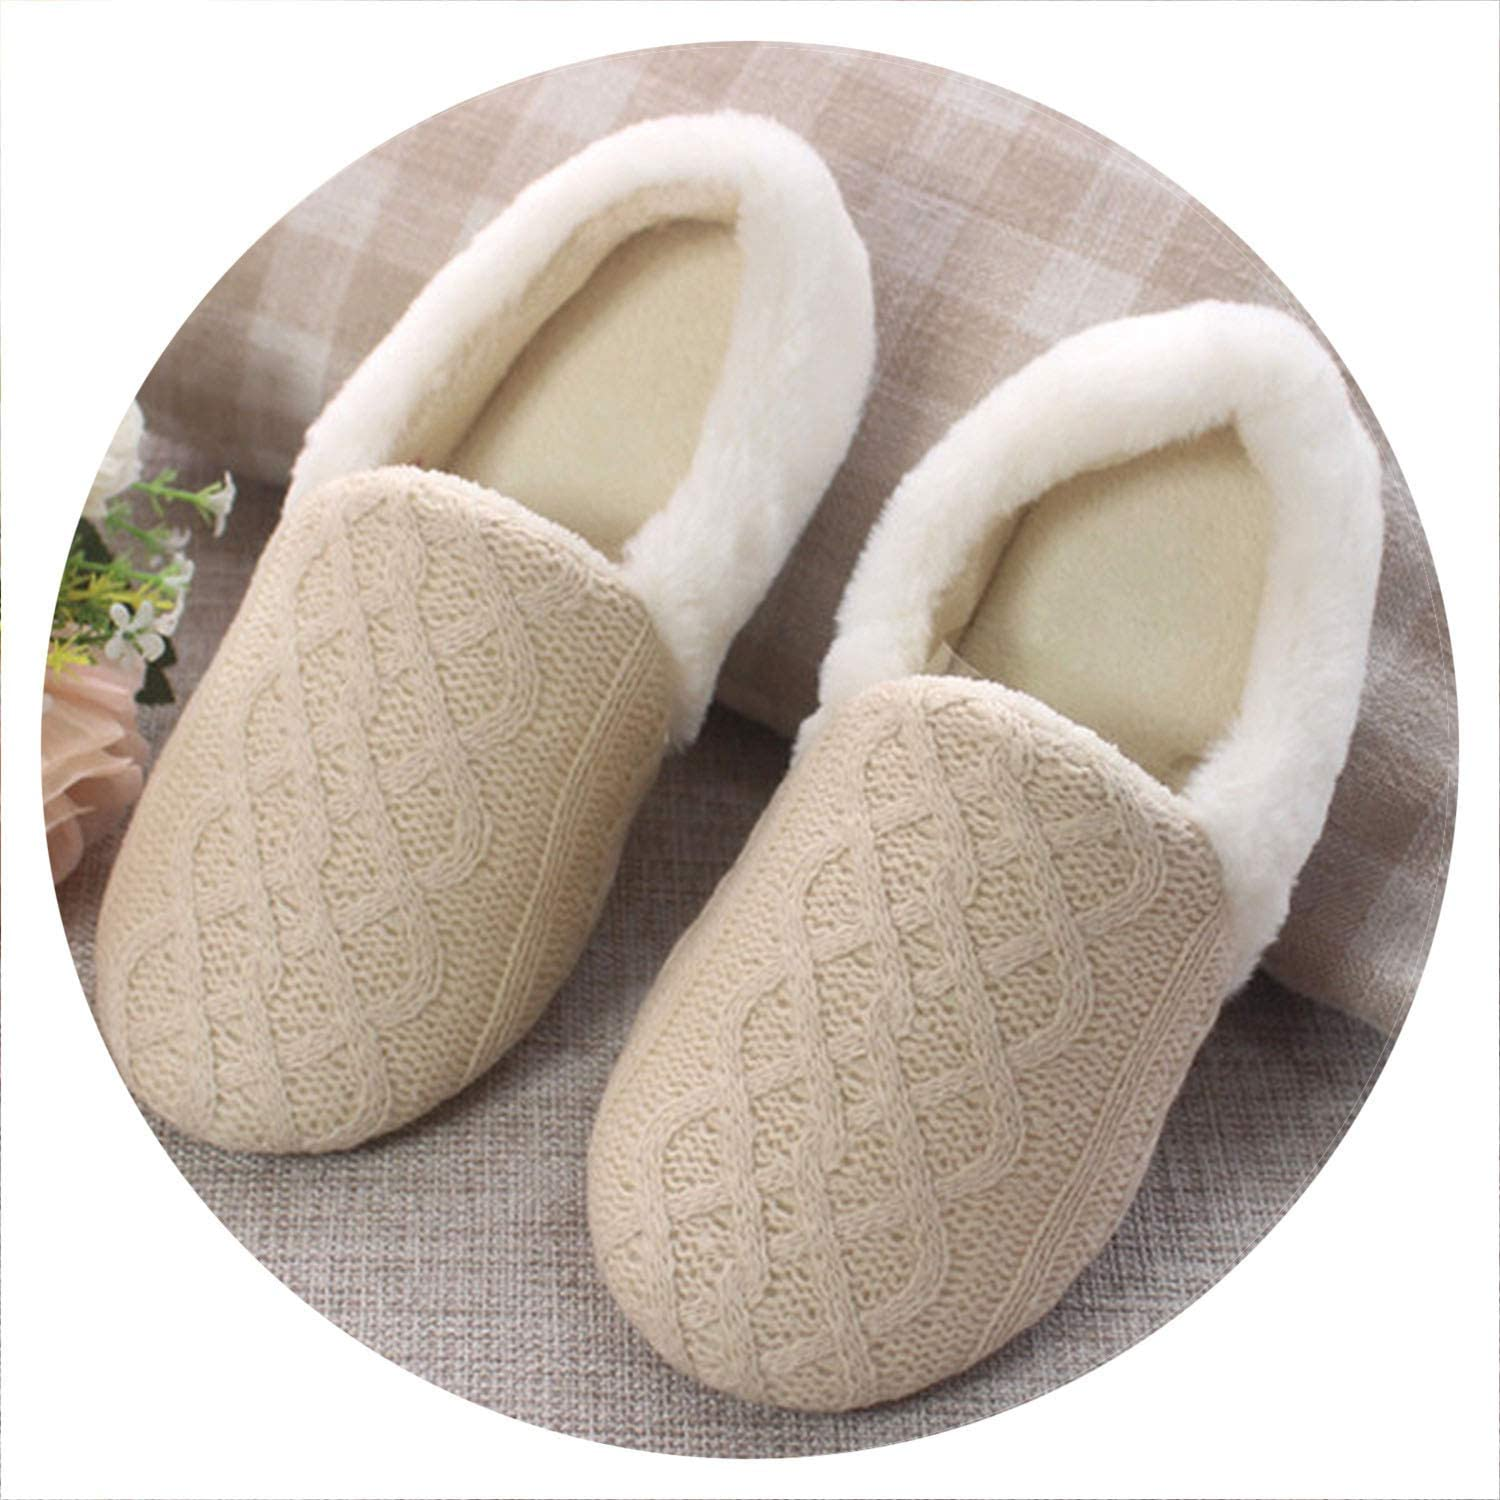 Together to create a miracle New Spring Autumn Winter Home Cotton Plush Knitting Slippers Women Indoor Floor Flat shoes Girls Gift